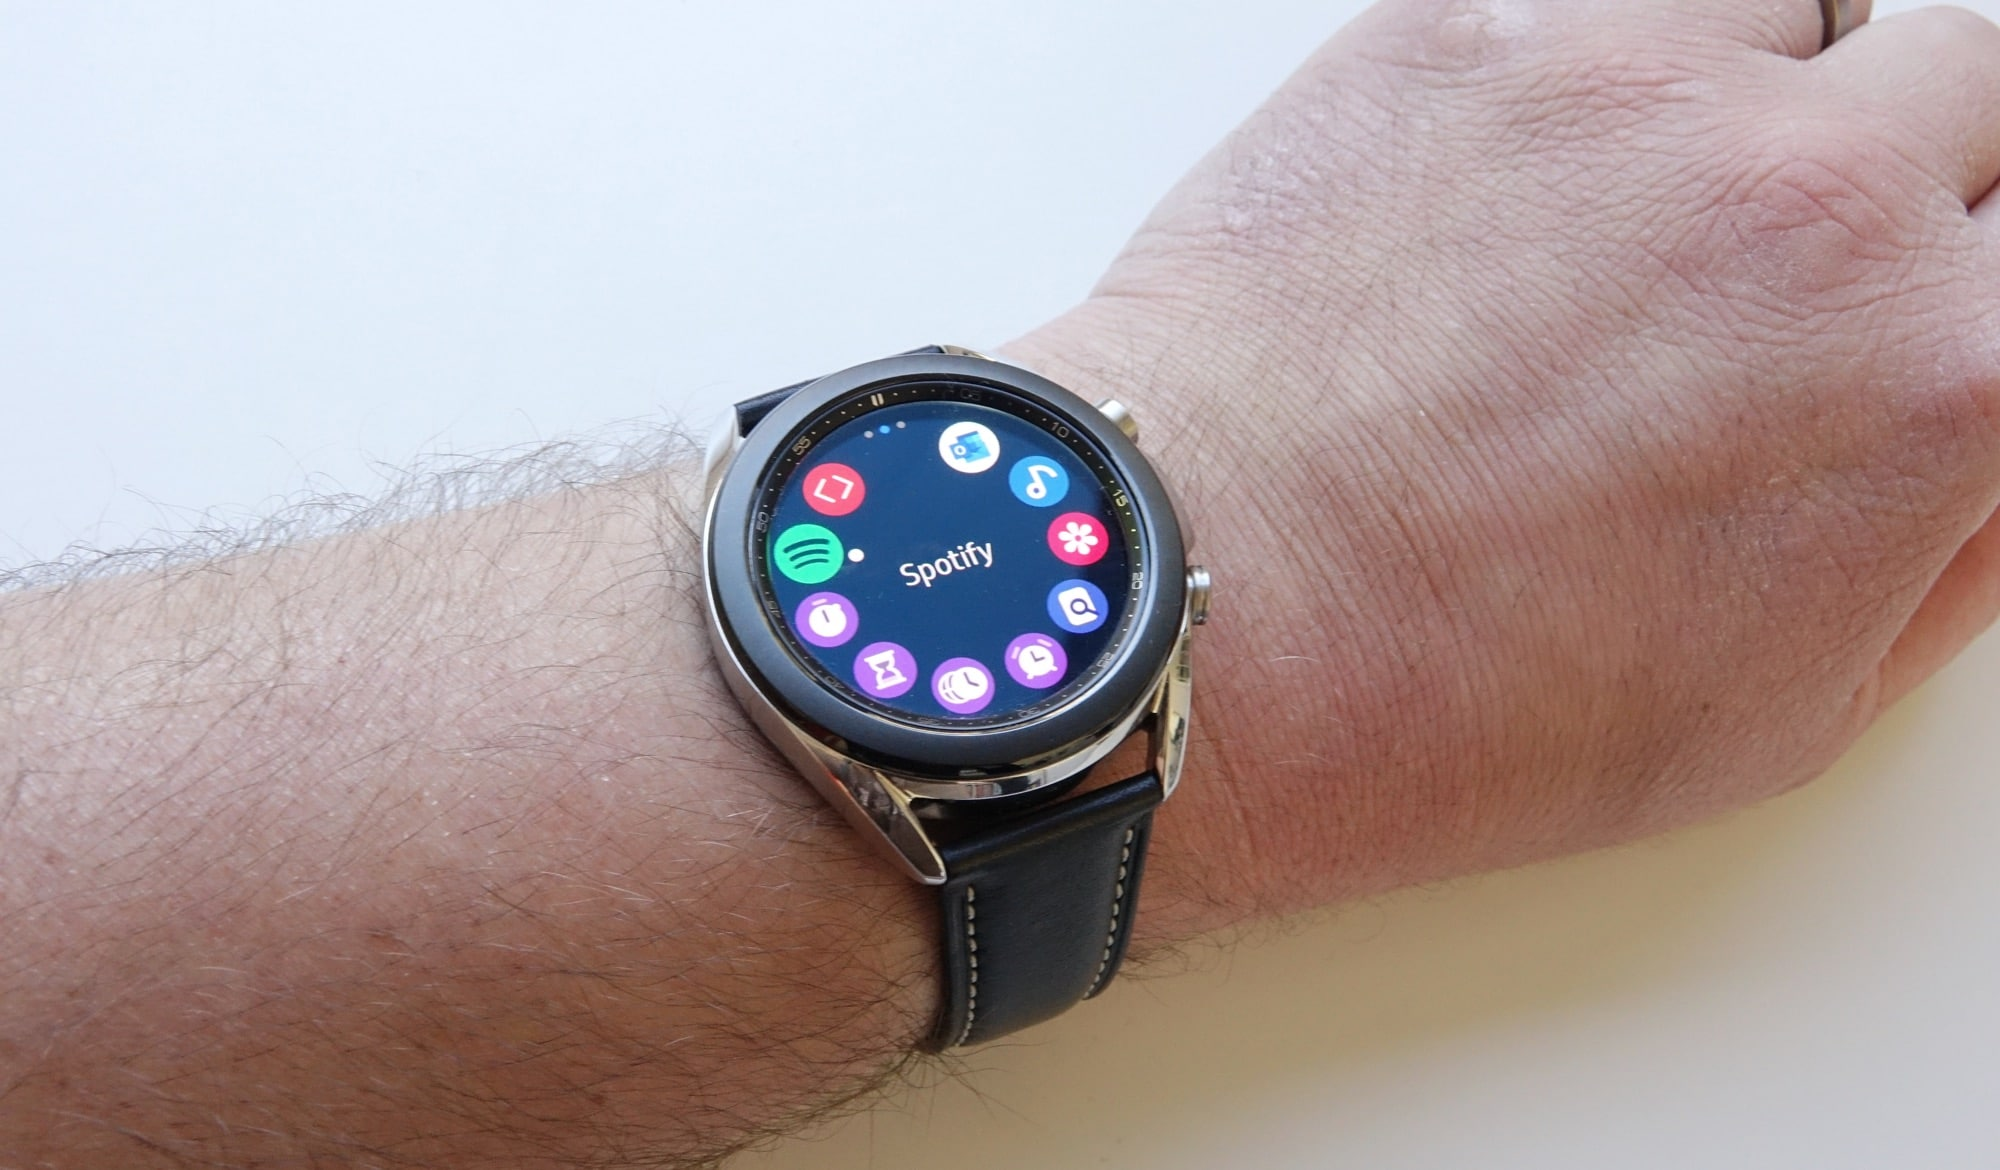 The app menu on the Galaxy Watch 3